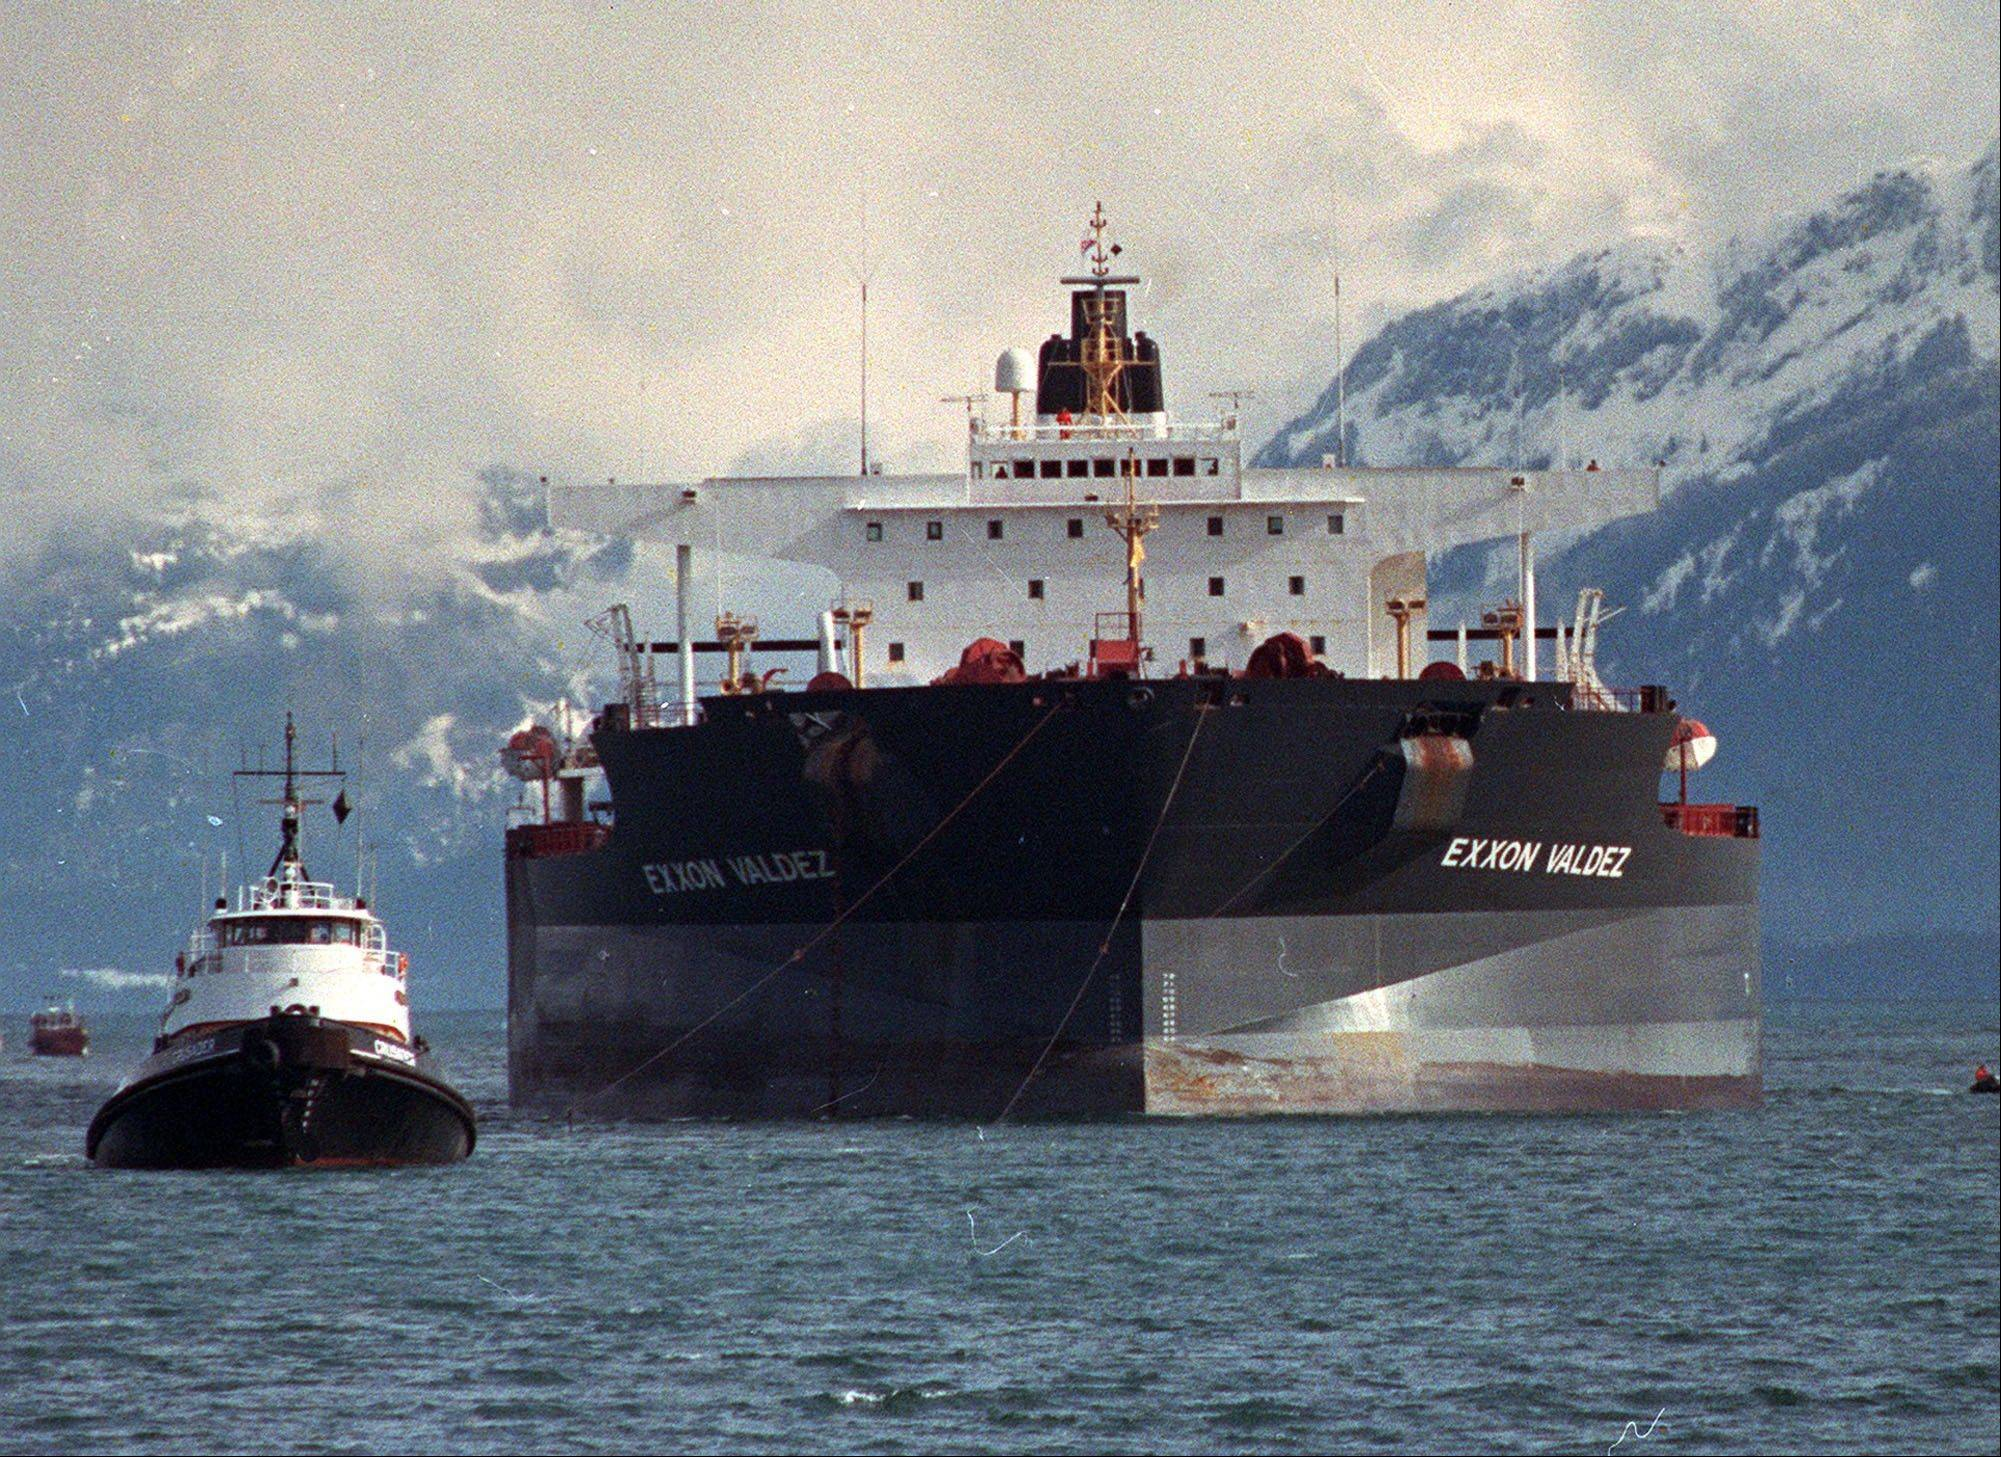 Tugboats pull the crippled tanker Exxon Valdez towards Naked Island in Prince William Sound, Alaska, in this April 5, 1989, file photo after the ship was pulled from Bligh Reef.